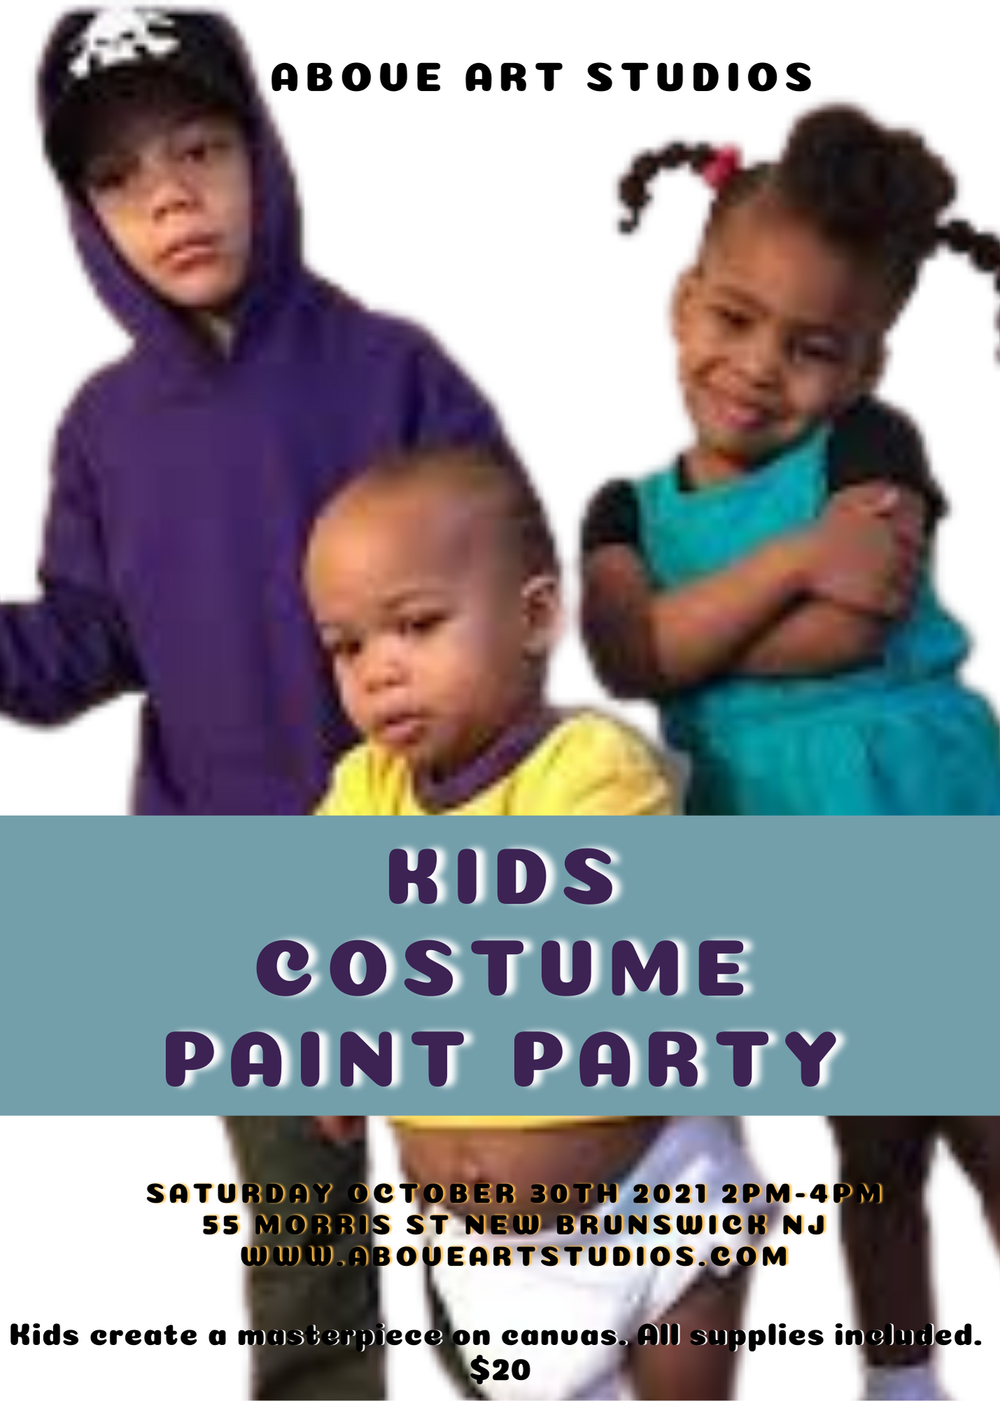 Kids Costume Paint Party Oct. 30th